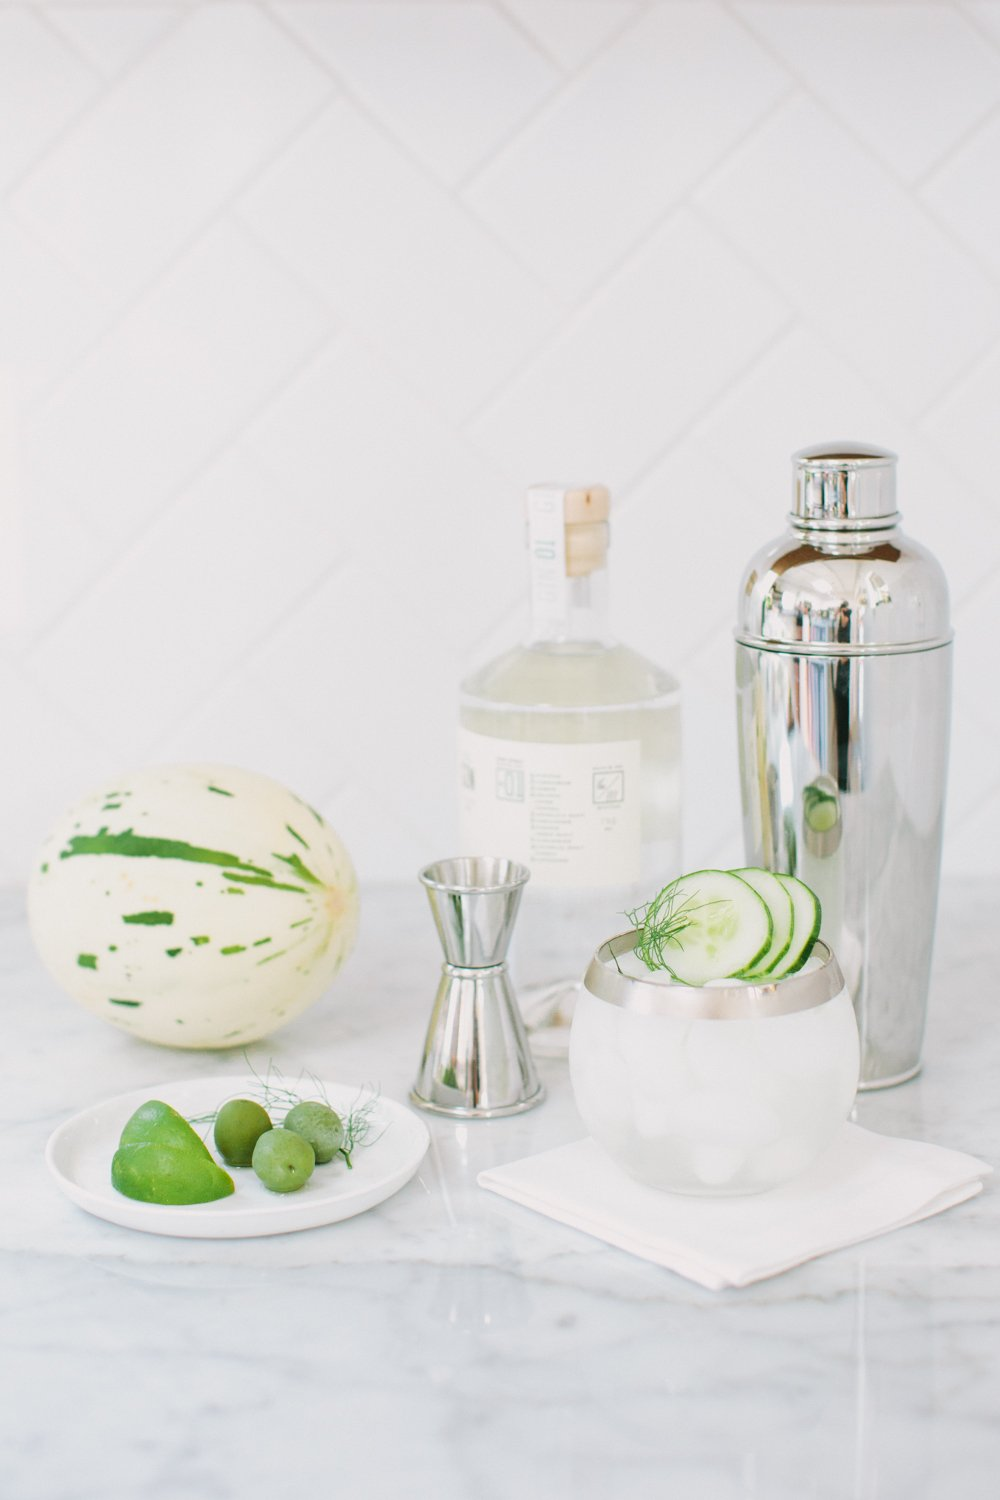 Cocktail ingredients and tools on a marble surface next to a plate of garnishes including lime, dill and mint